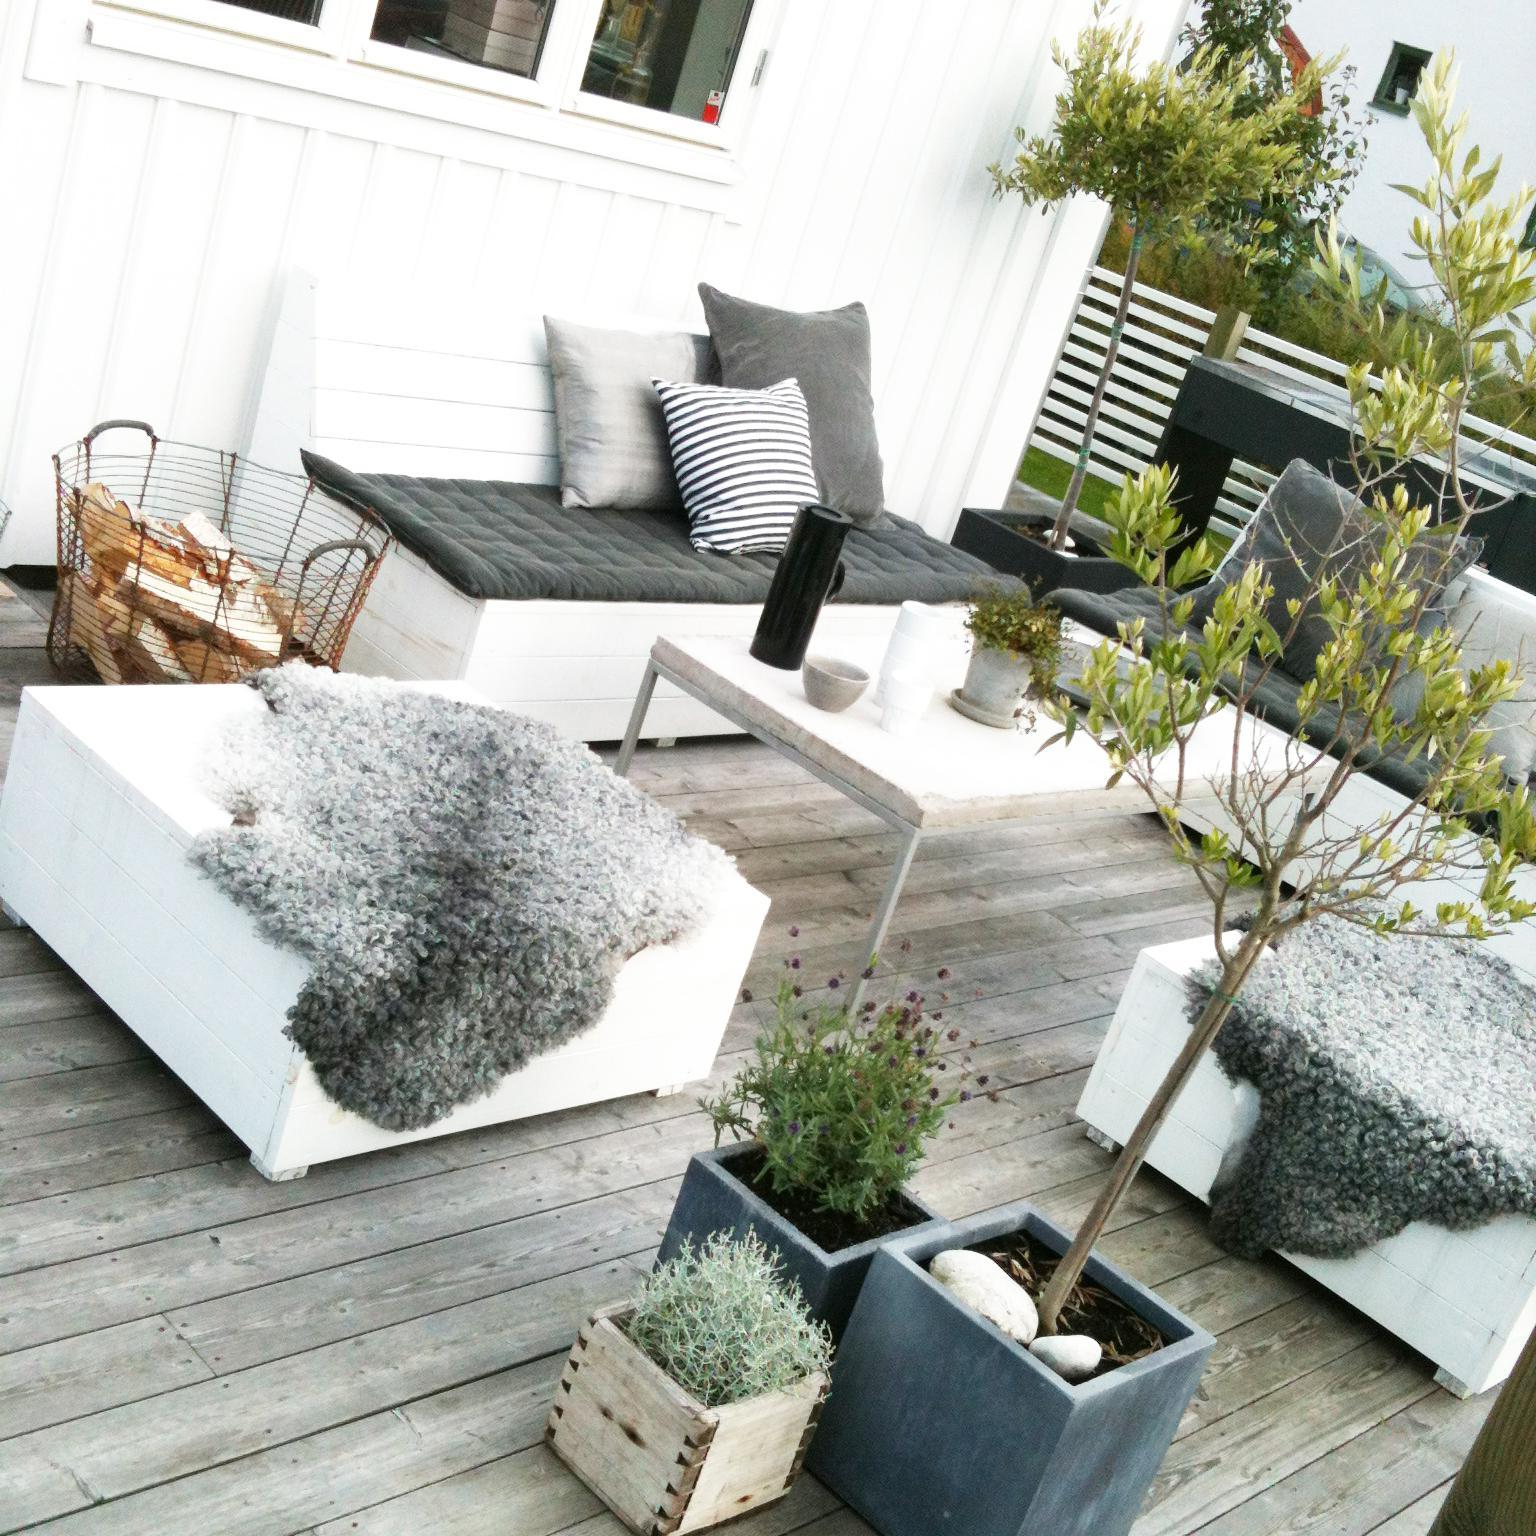 Due to its practicality, decking is widely used in open areas